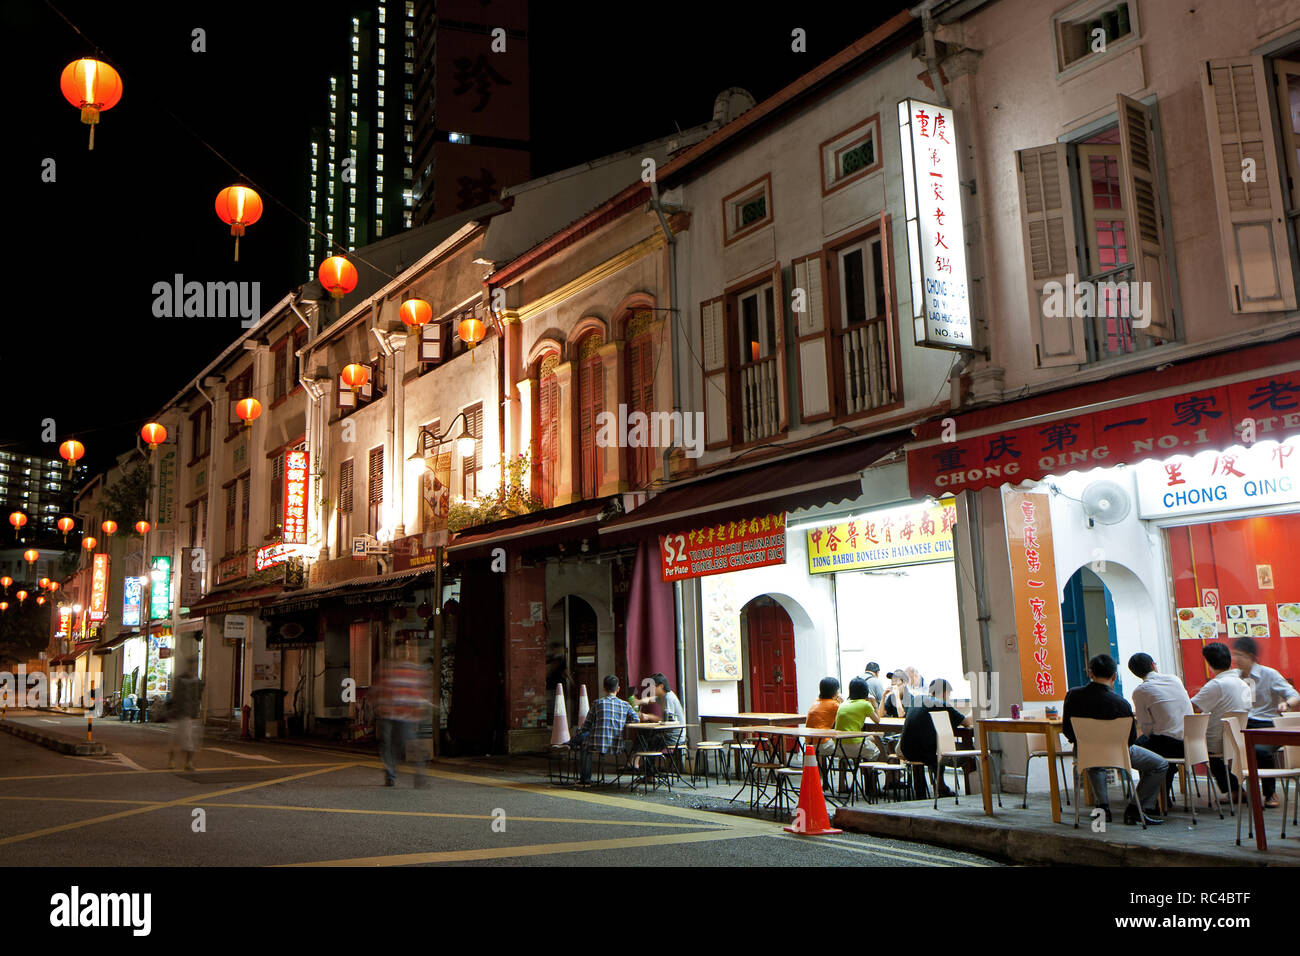 Old but renovated shophouses and few people sitting in restaurants on Smith Street in Singapore's Chinatown, at night. - Stock Image